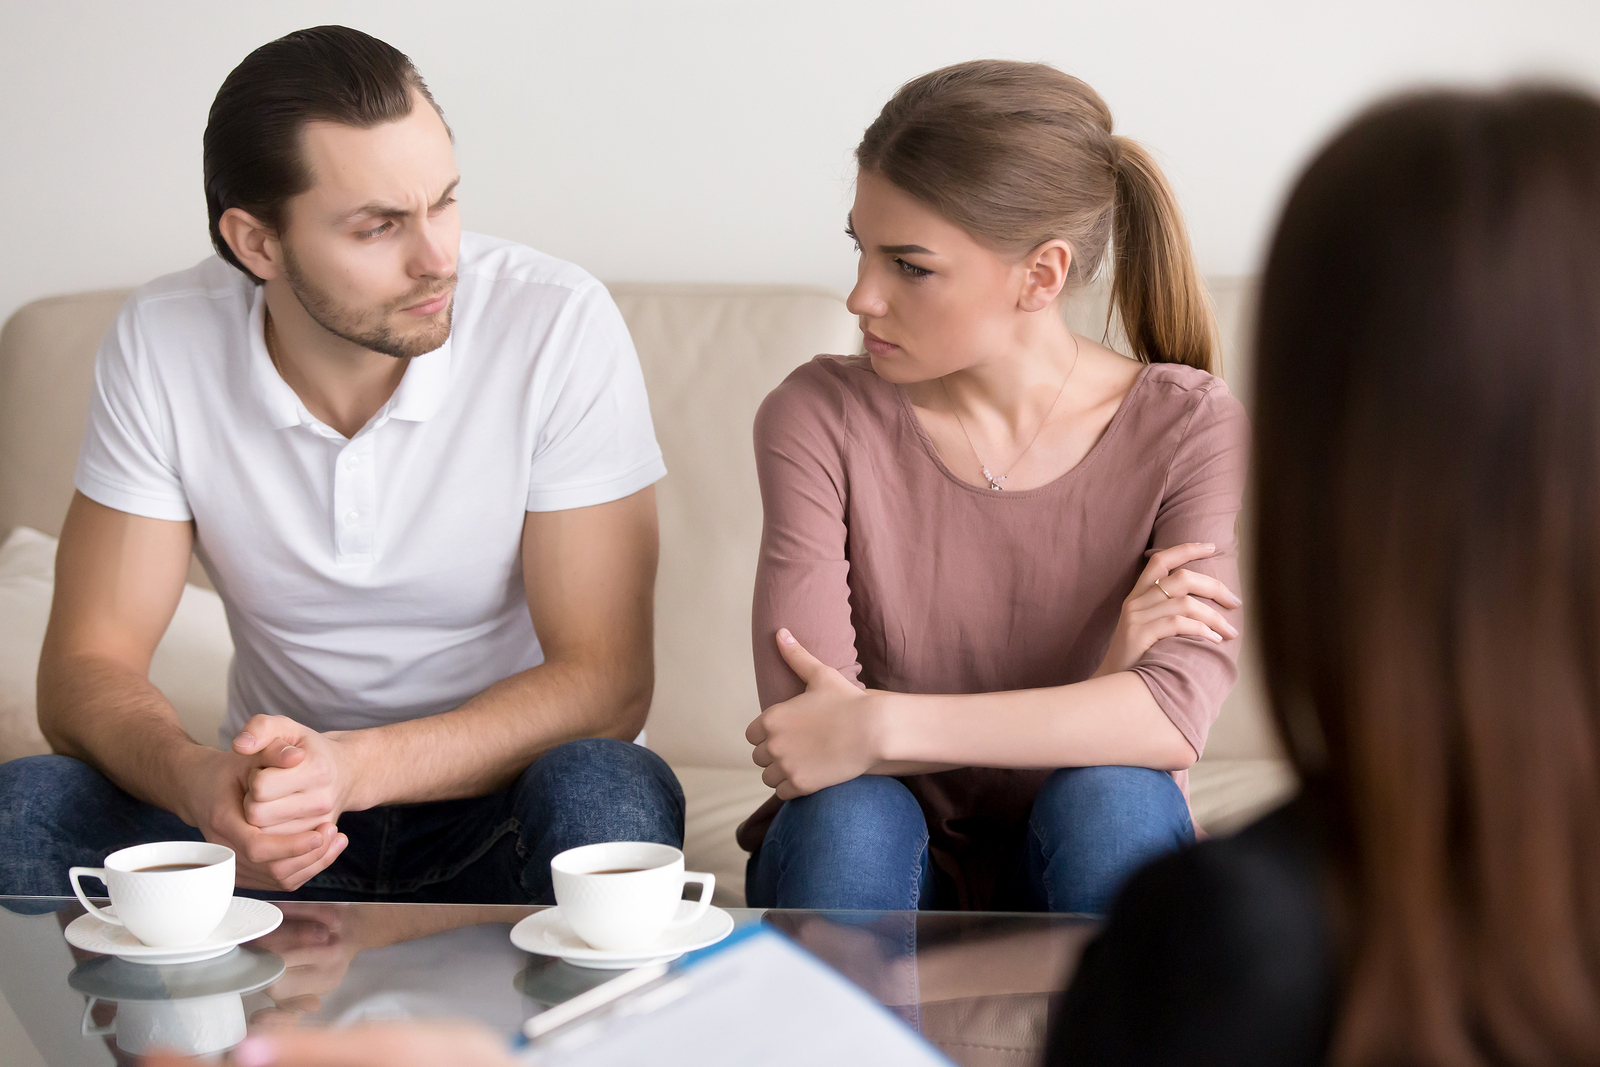 Find an Attorney to Help You Navigate the Divorce Process